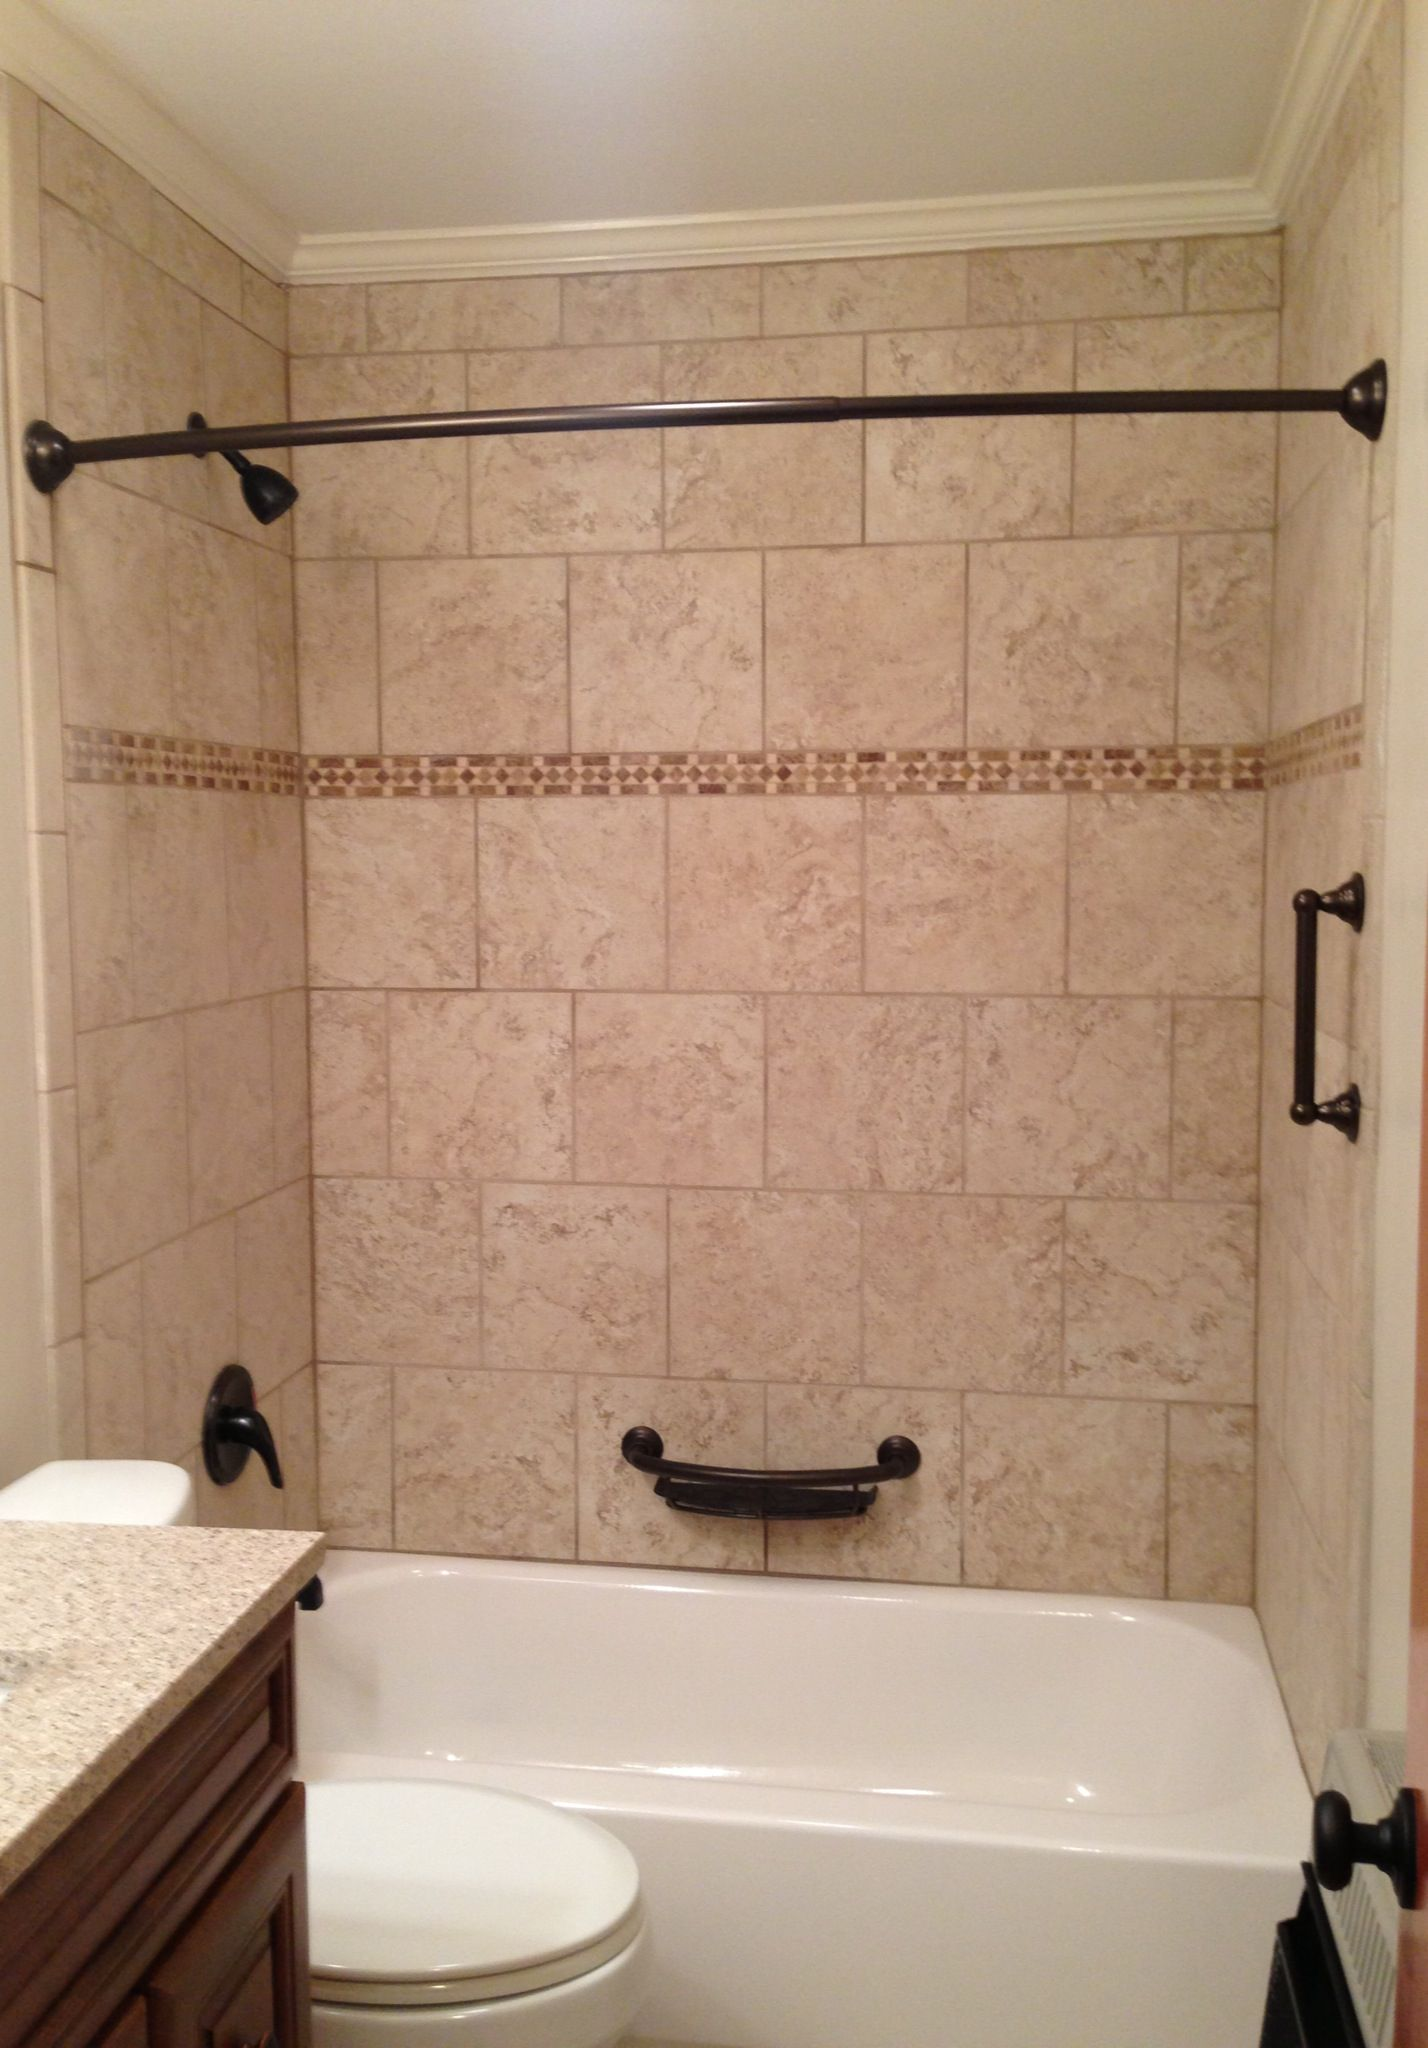 Tile Tub Surround Beige Bathtub